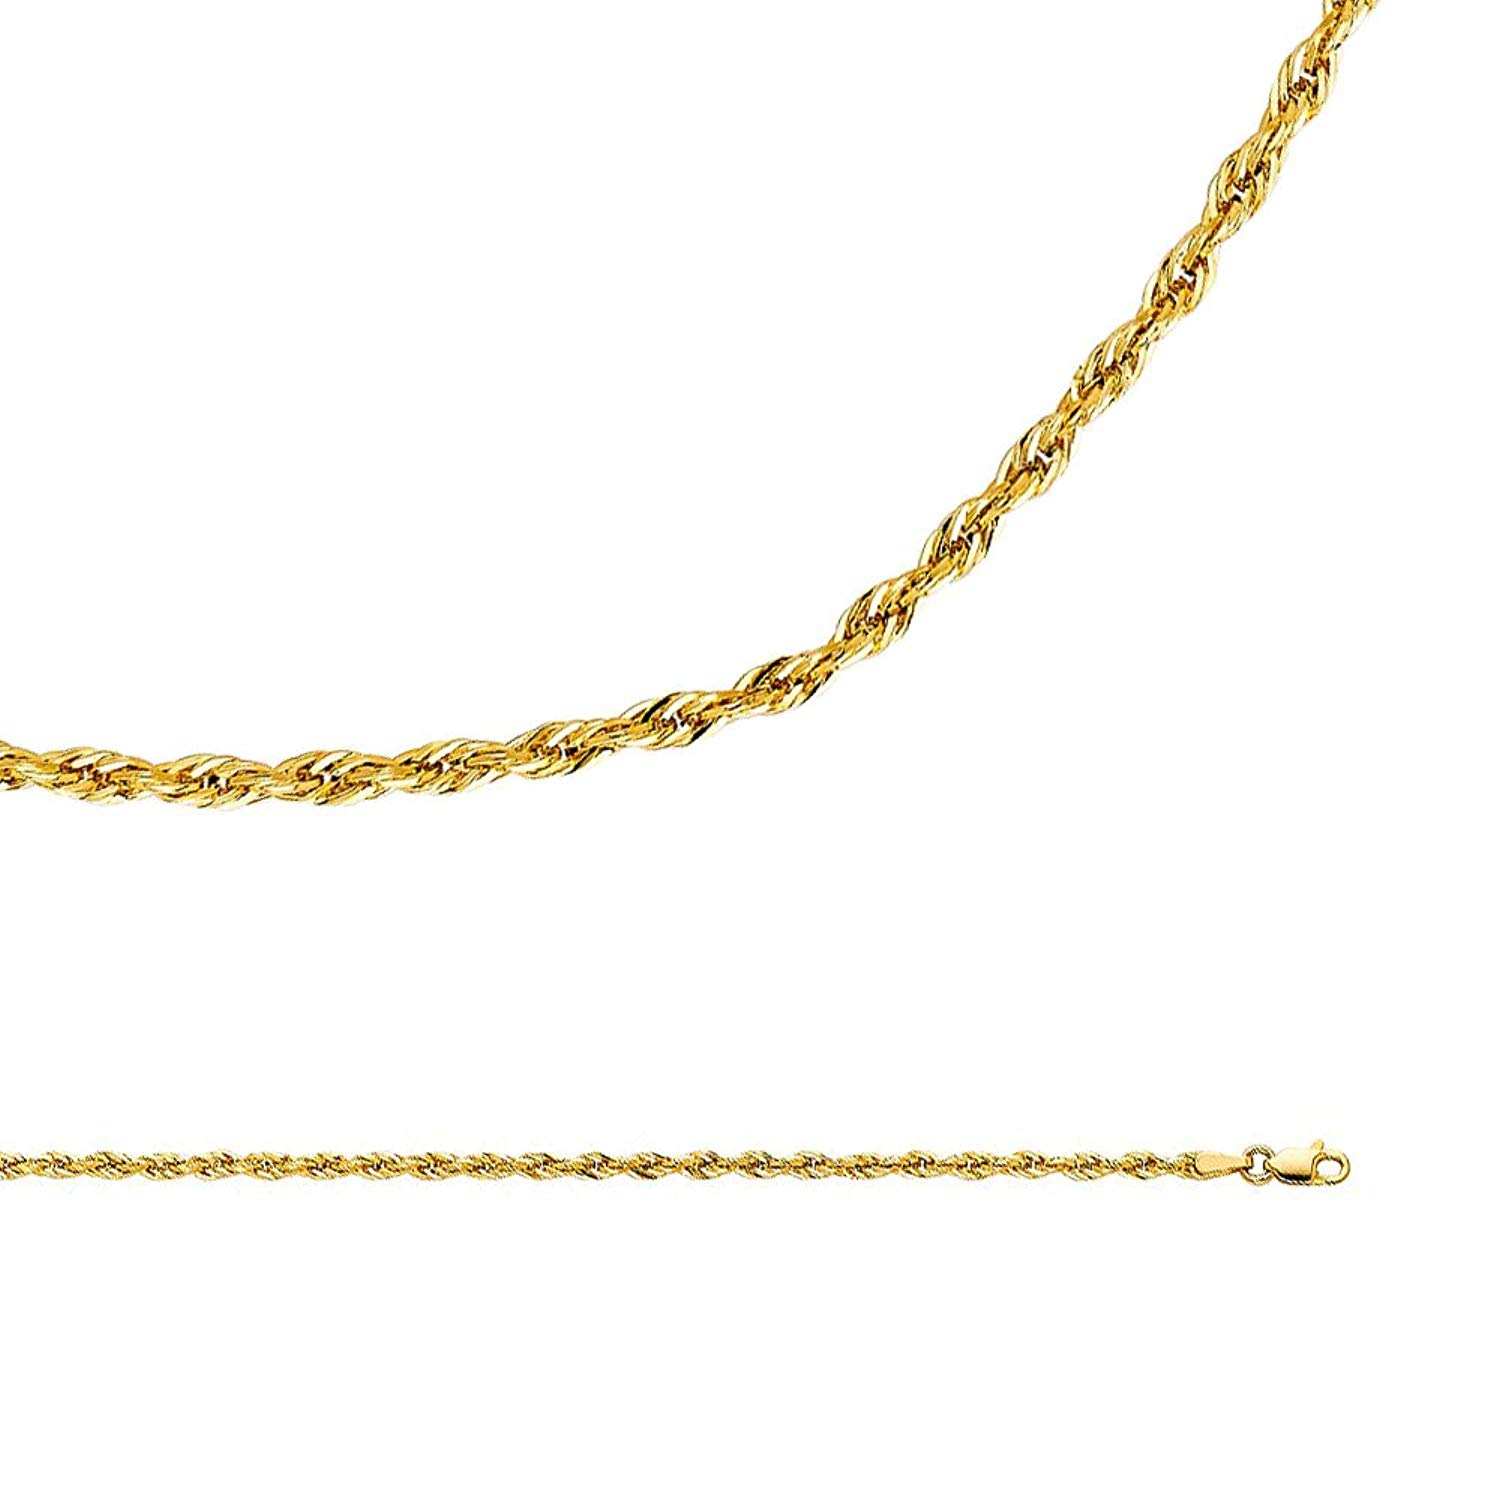 c8b602e95b6cc Cheap 18 Inch Gold Rope Necklace, find 18 Inch Gold Rope Necklace ...